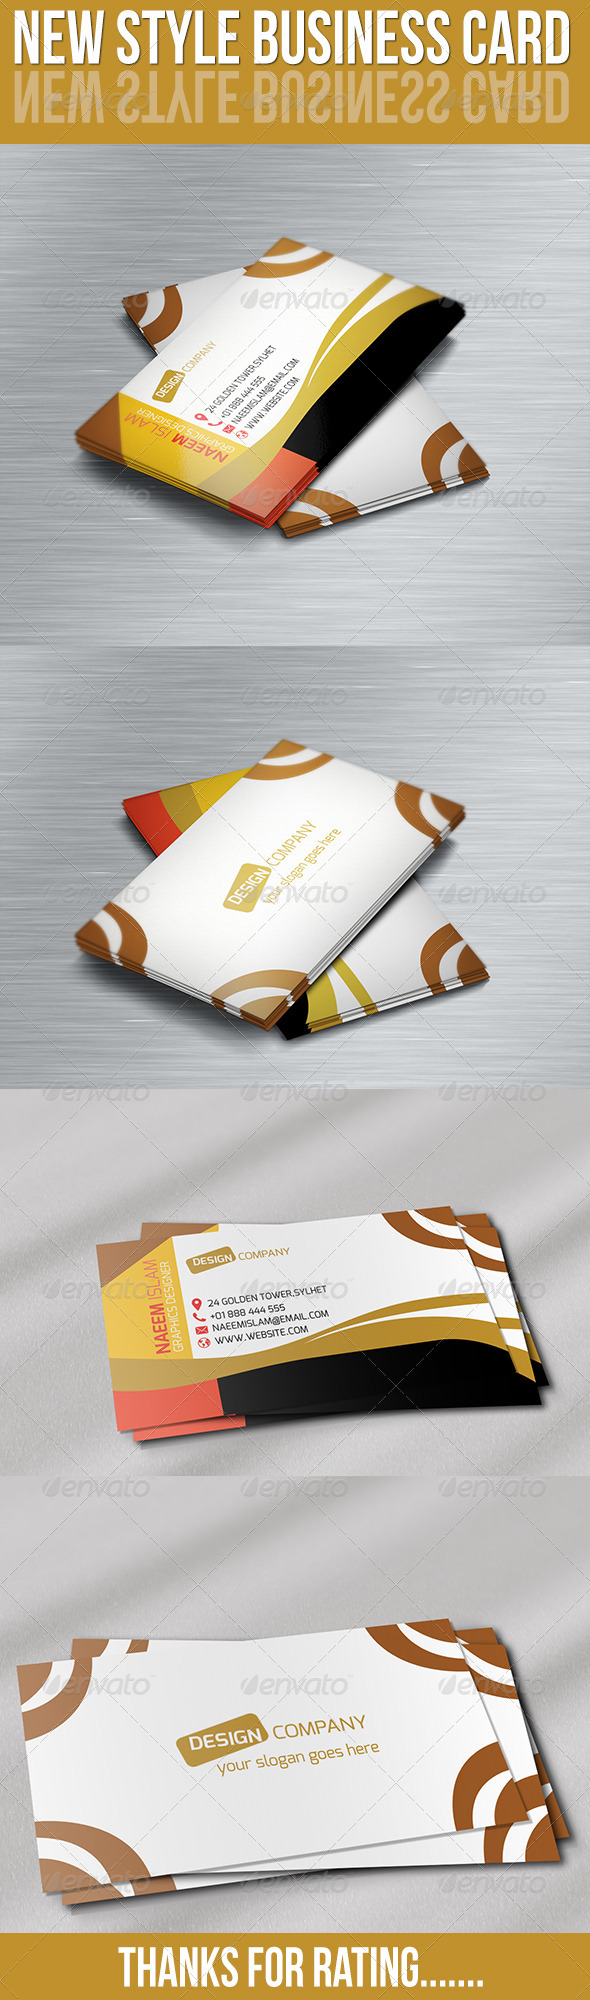 New style business card adobe photoshop business cards and adobe new style business card features easy to edit optimized for printing 300 dpi cmyk color mode 352 inch dimension 025 bleed reheart Image collections